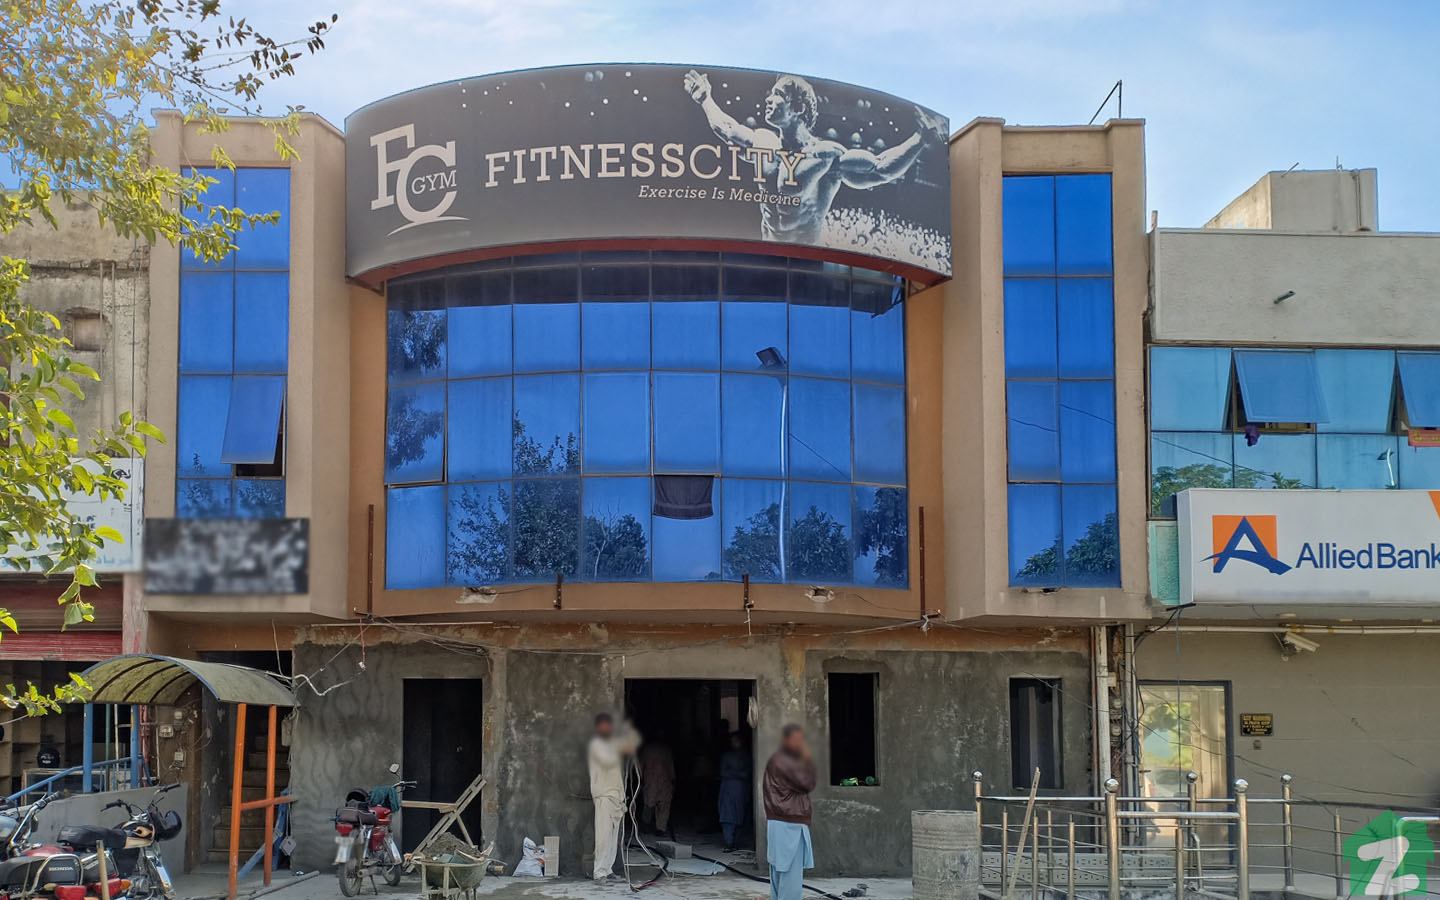 Front view of the famous Fitness Lounge.